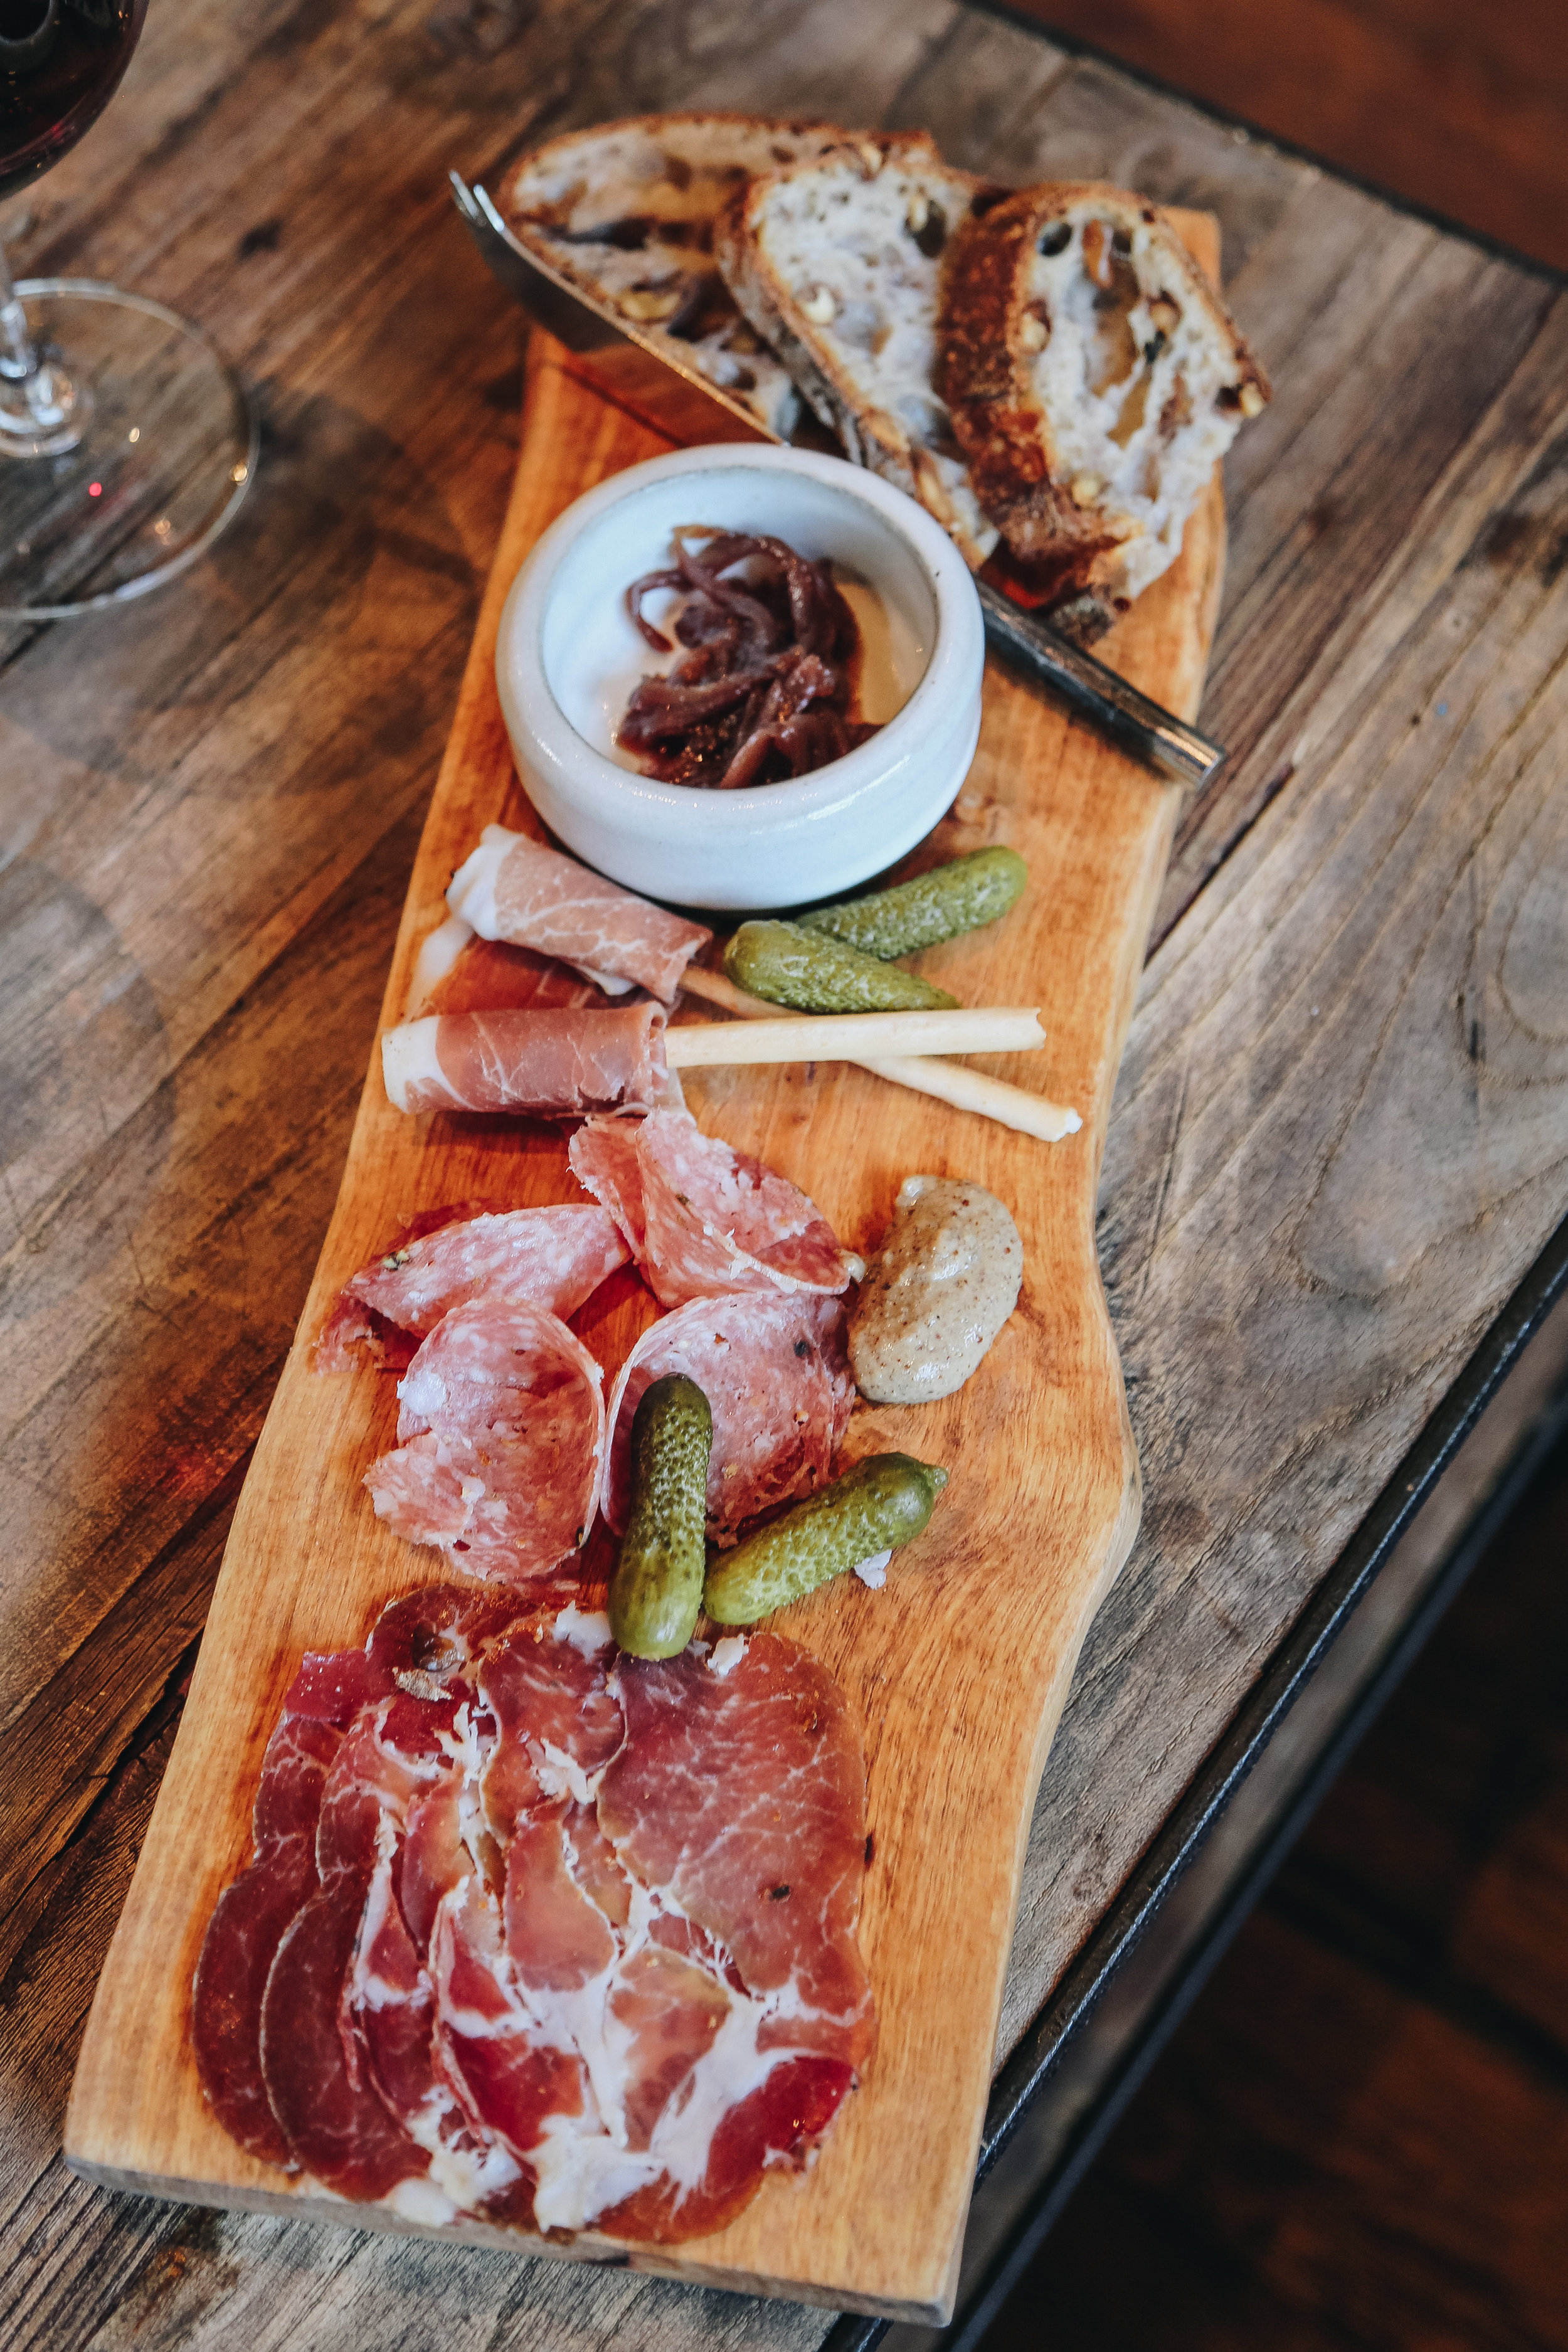 Red & Charcuterie Flight - Zoe's Dry Cured Coppa, Finocchiona & Prosciutto Wrapped Breadstick, Mustard, Girl & the Fig Red Onion Confit, Cornichon, Model Bakery Walnut Bread   Wine Pairings -2014 Pinot Noir, Charles Vineyard* | 2013 Zinfandel | 2013 Cabernet Sauvignon